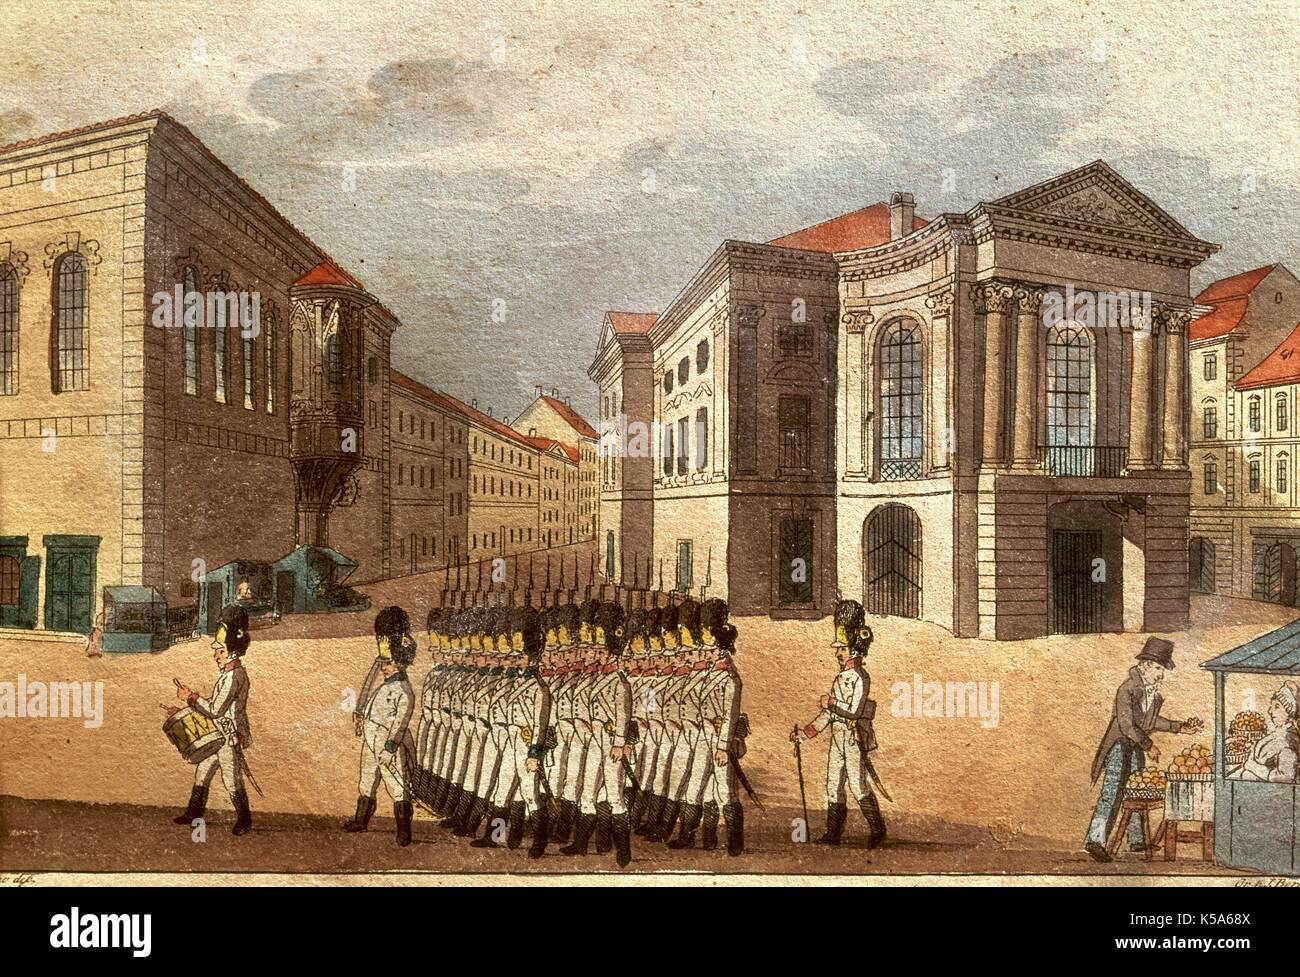 Austro-Hungarian Empire. National Theater of Prague during the Austrian occupation. Troops parading. Lithography. Mozartian Museum, Prague. Czech Republic. - Stock Image